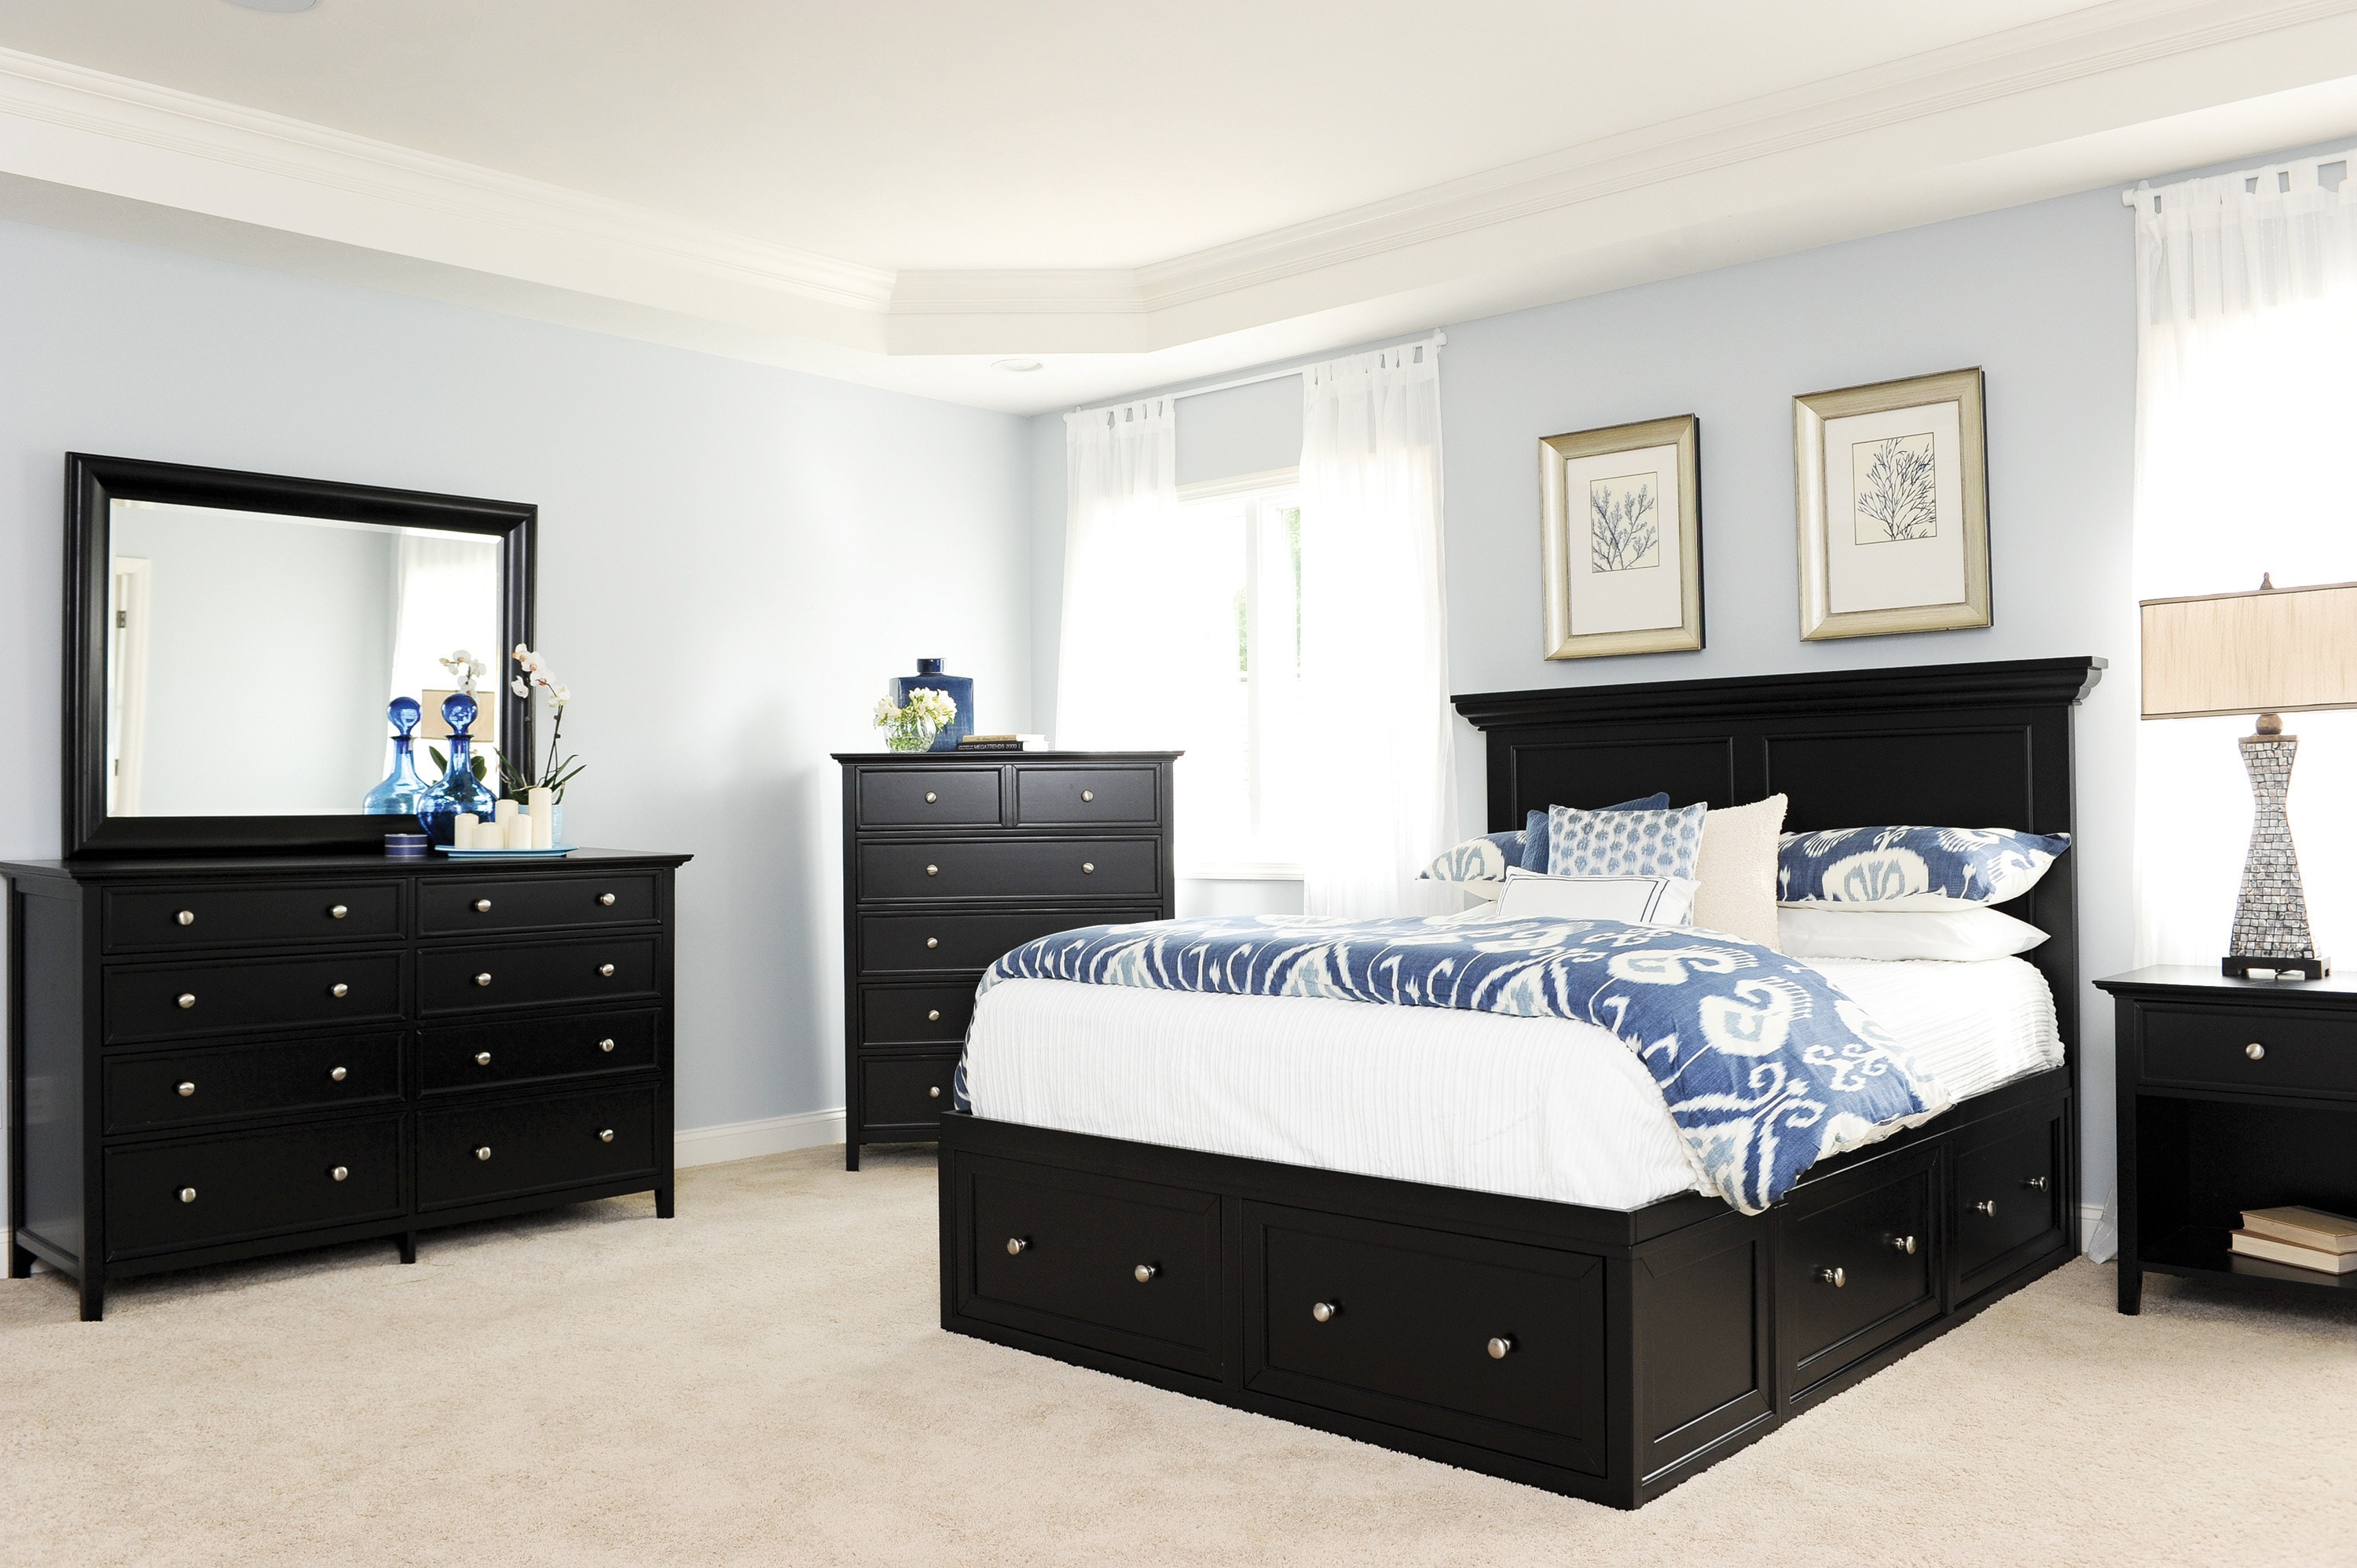 Ellsworth 4-Piece Queen Storage Bedroom Set - Black